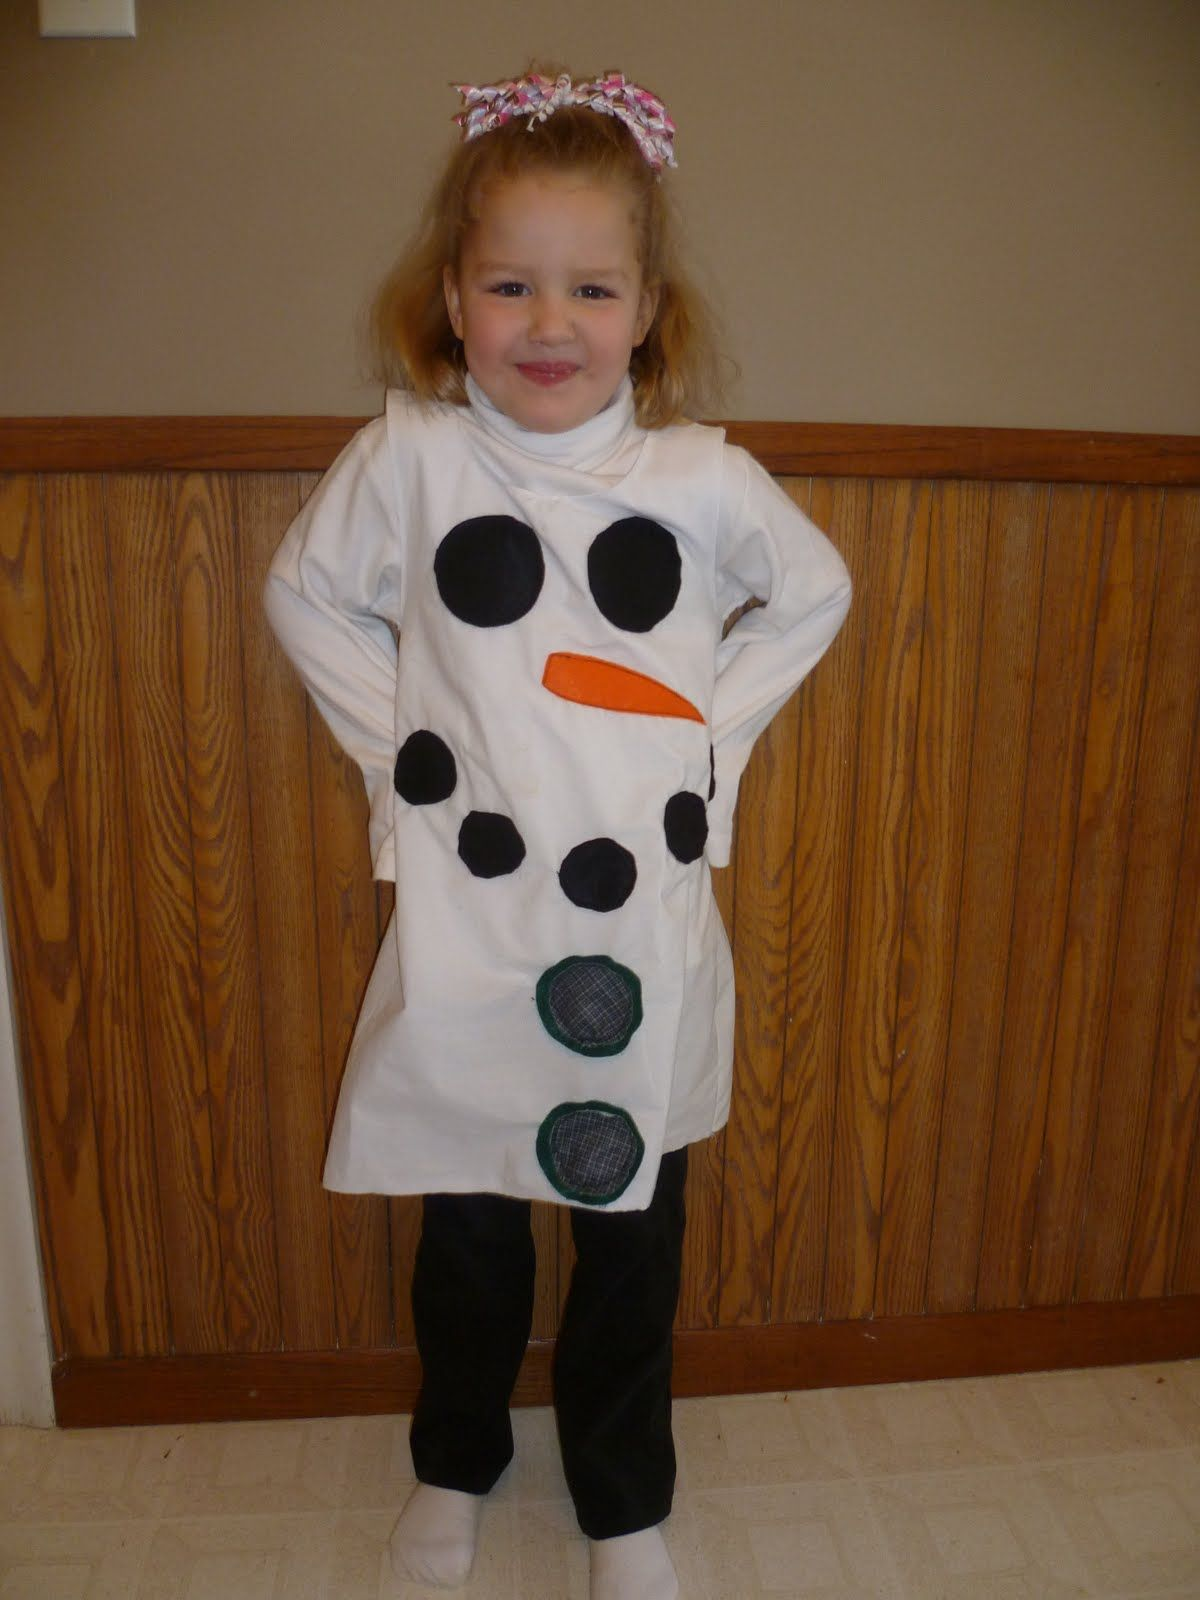 181 Snowman Dress Made from a Bed Sheet (With images